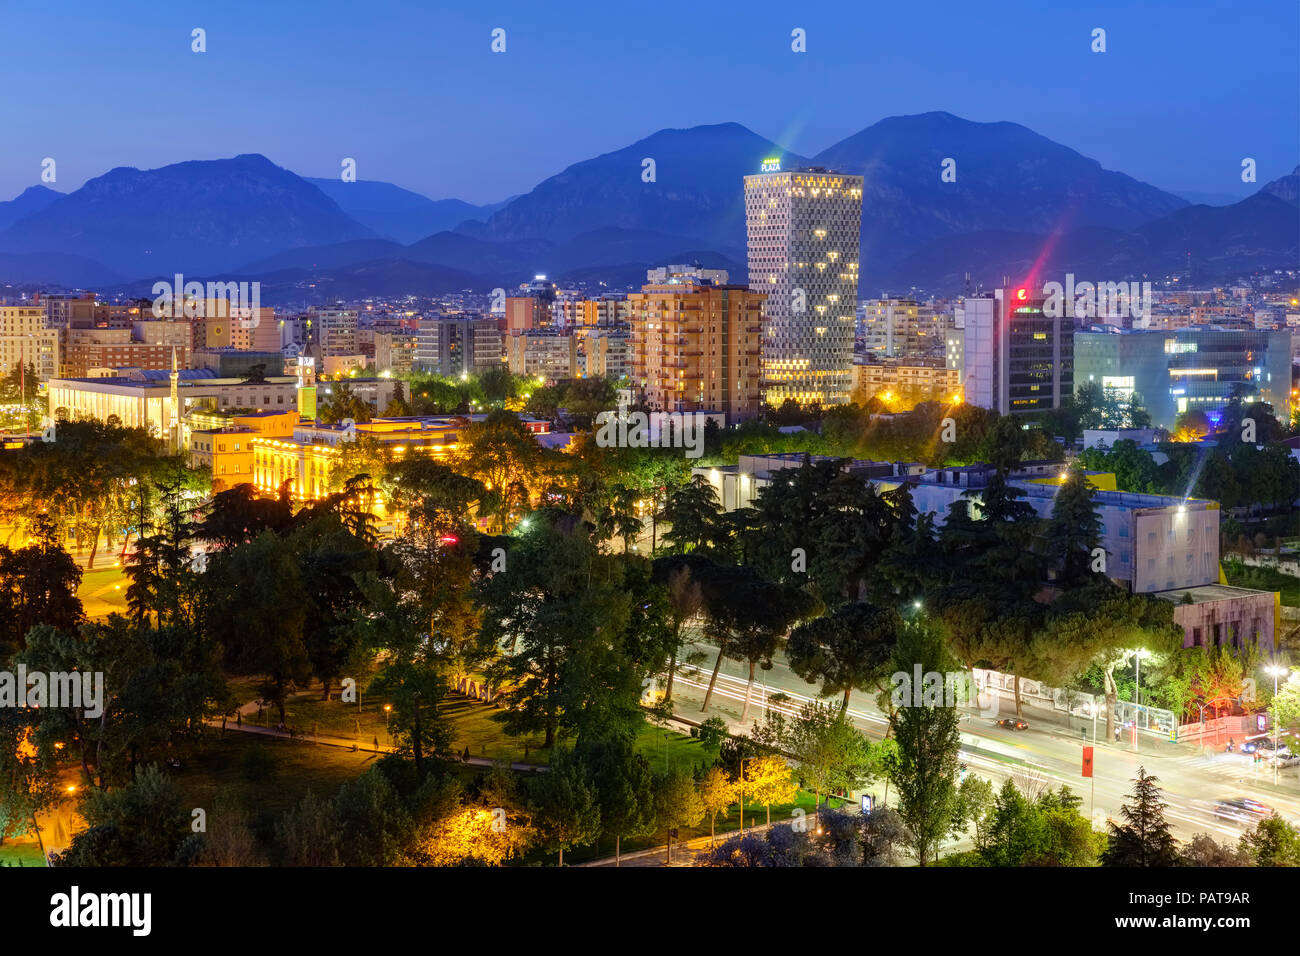 Albania, Tirana, City Center and TID Tower in the evening - Stock Image